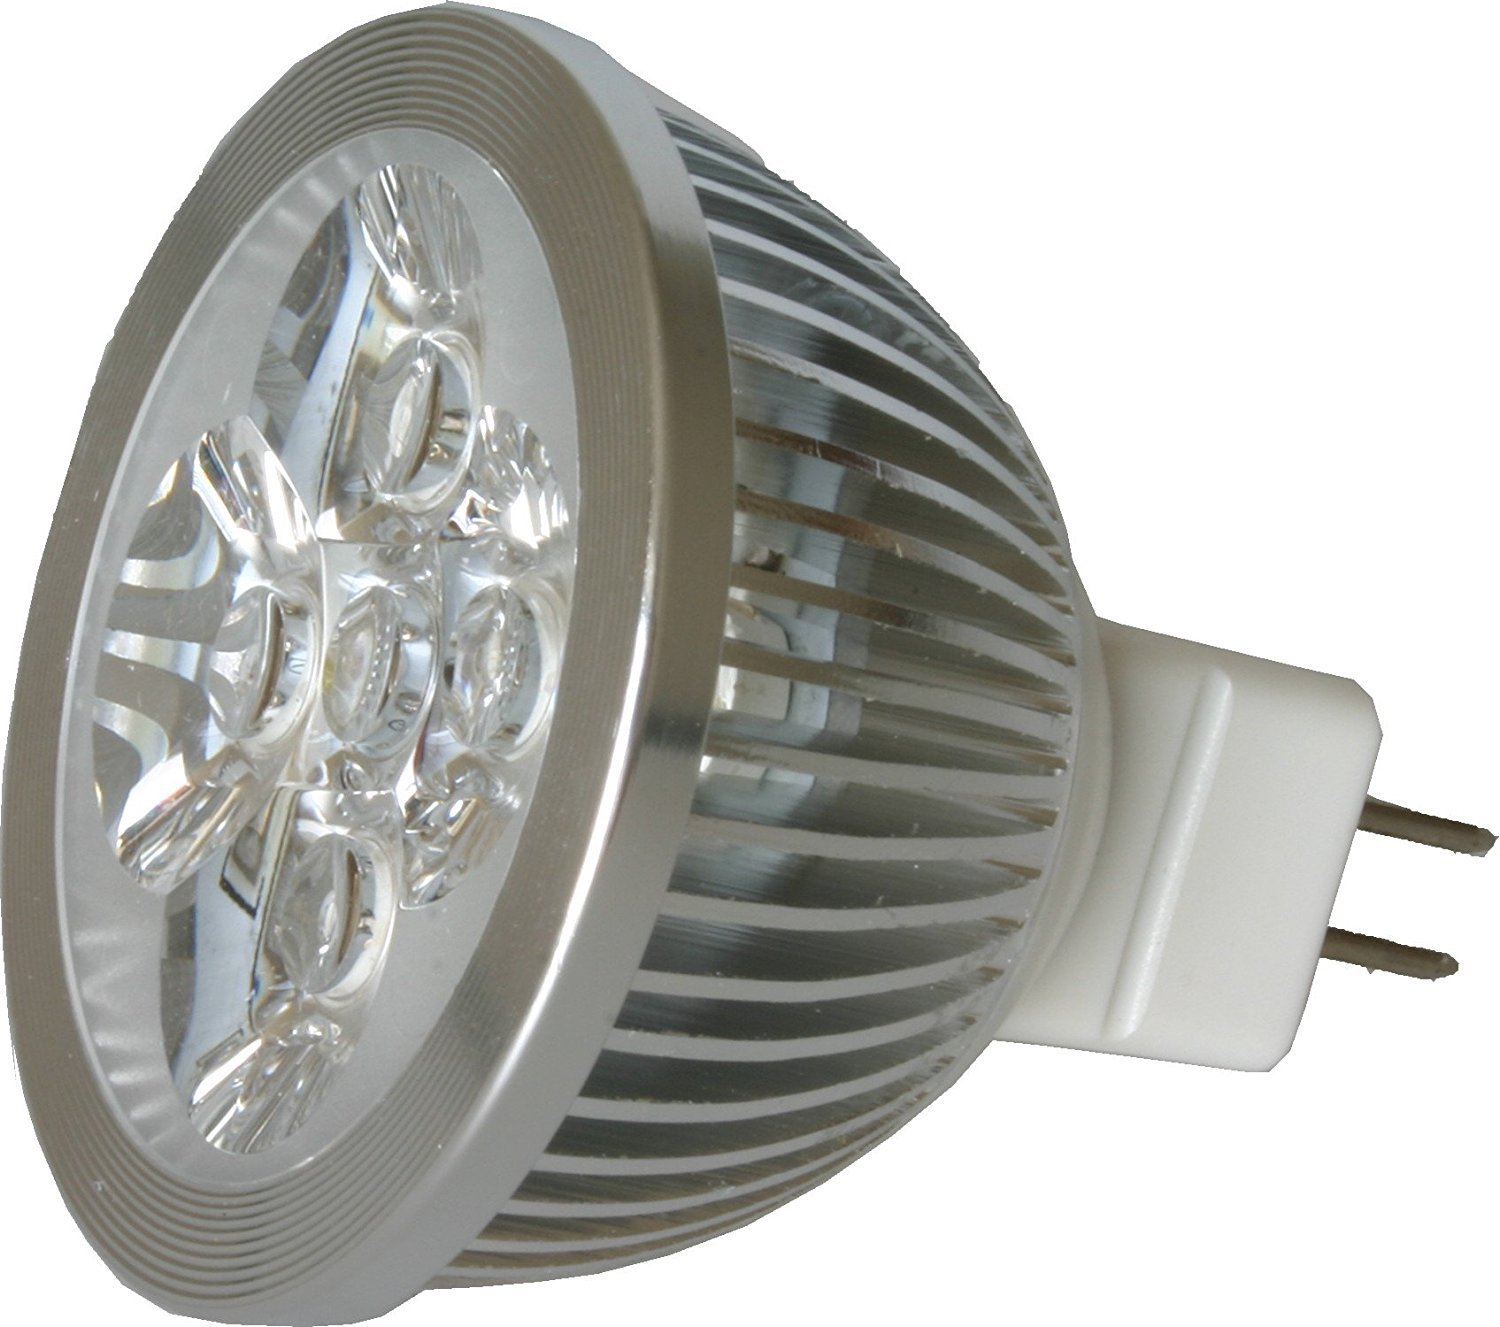 Best Of Mr16 Led Light Bulbs